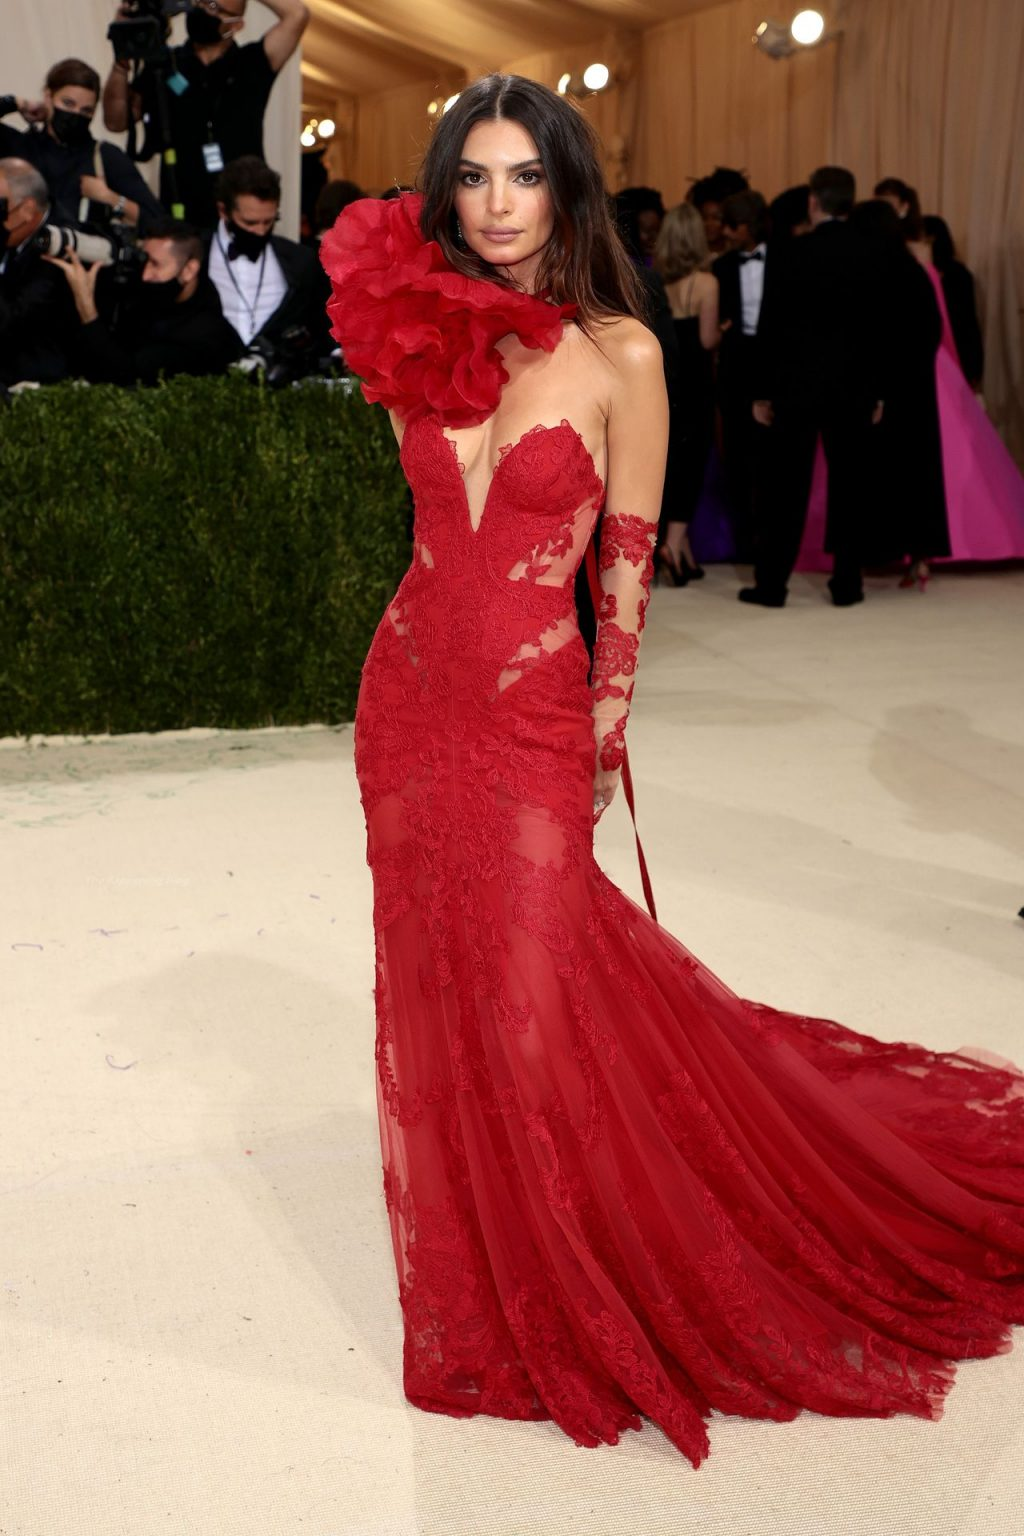 Emily Ratajkowski Brings the Heat in Lacy Vera Wang Gown For the 2021 Met Gala in NYC (46 Photos)